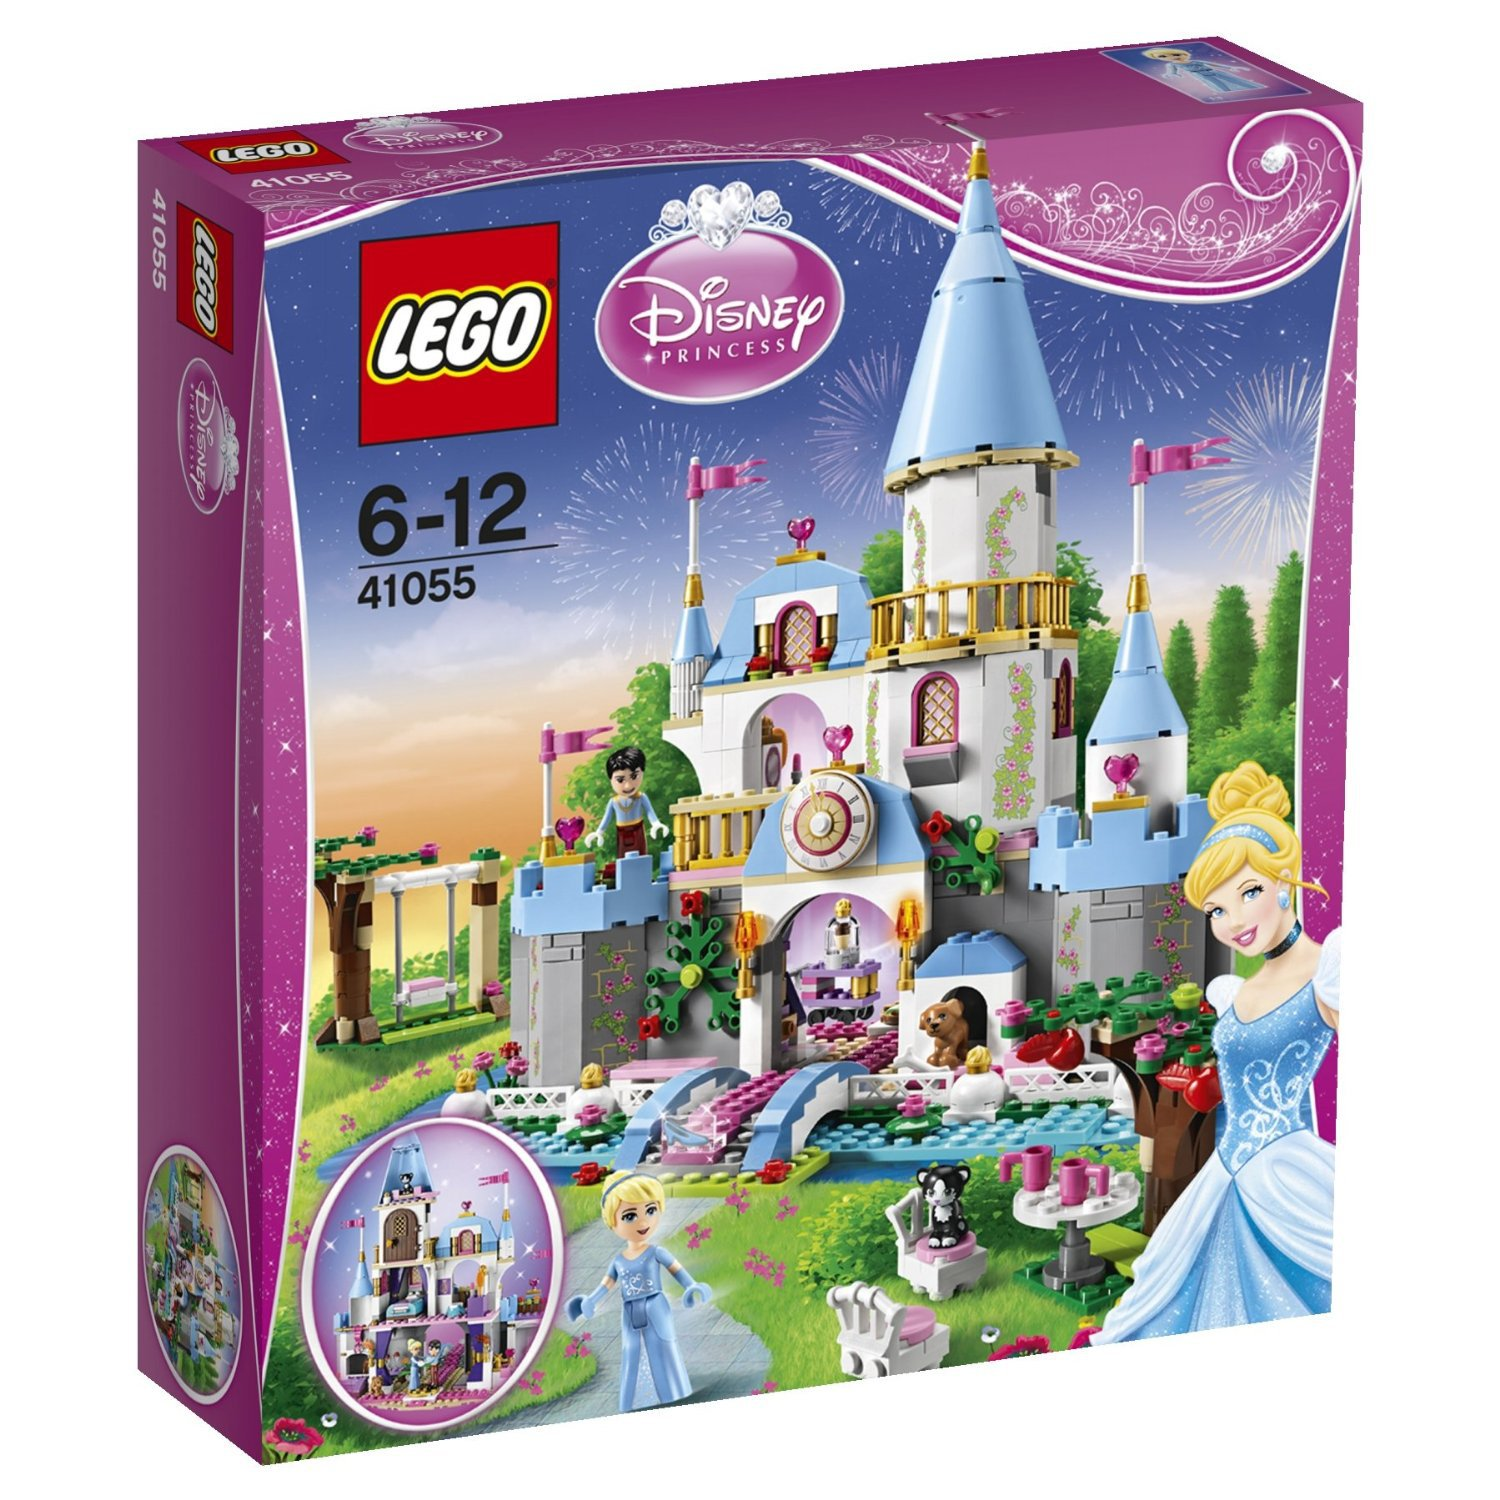 LEGO Disney Princess Cinderella's Romantic Castle (41055)